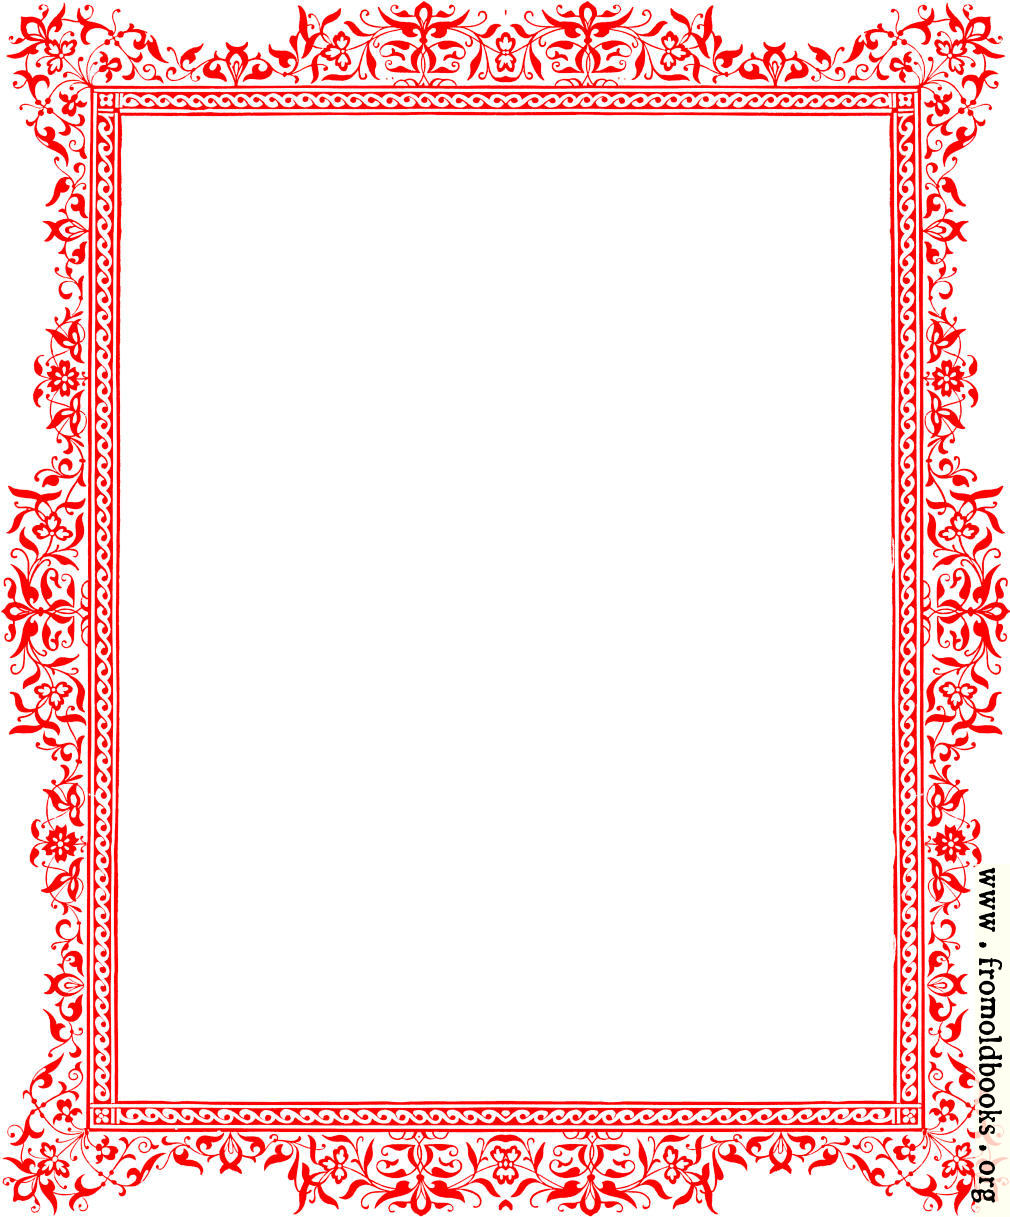 Ugly Sweater Christmas Party Invitations as adorable invitation sample